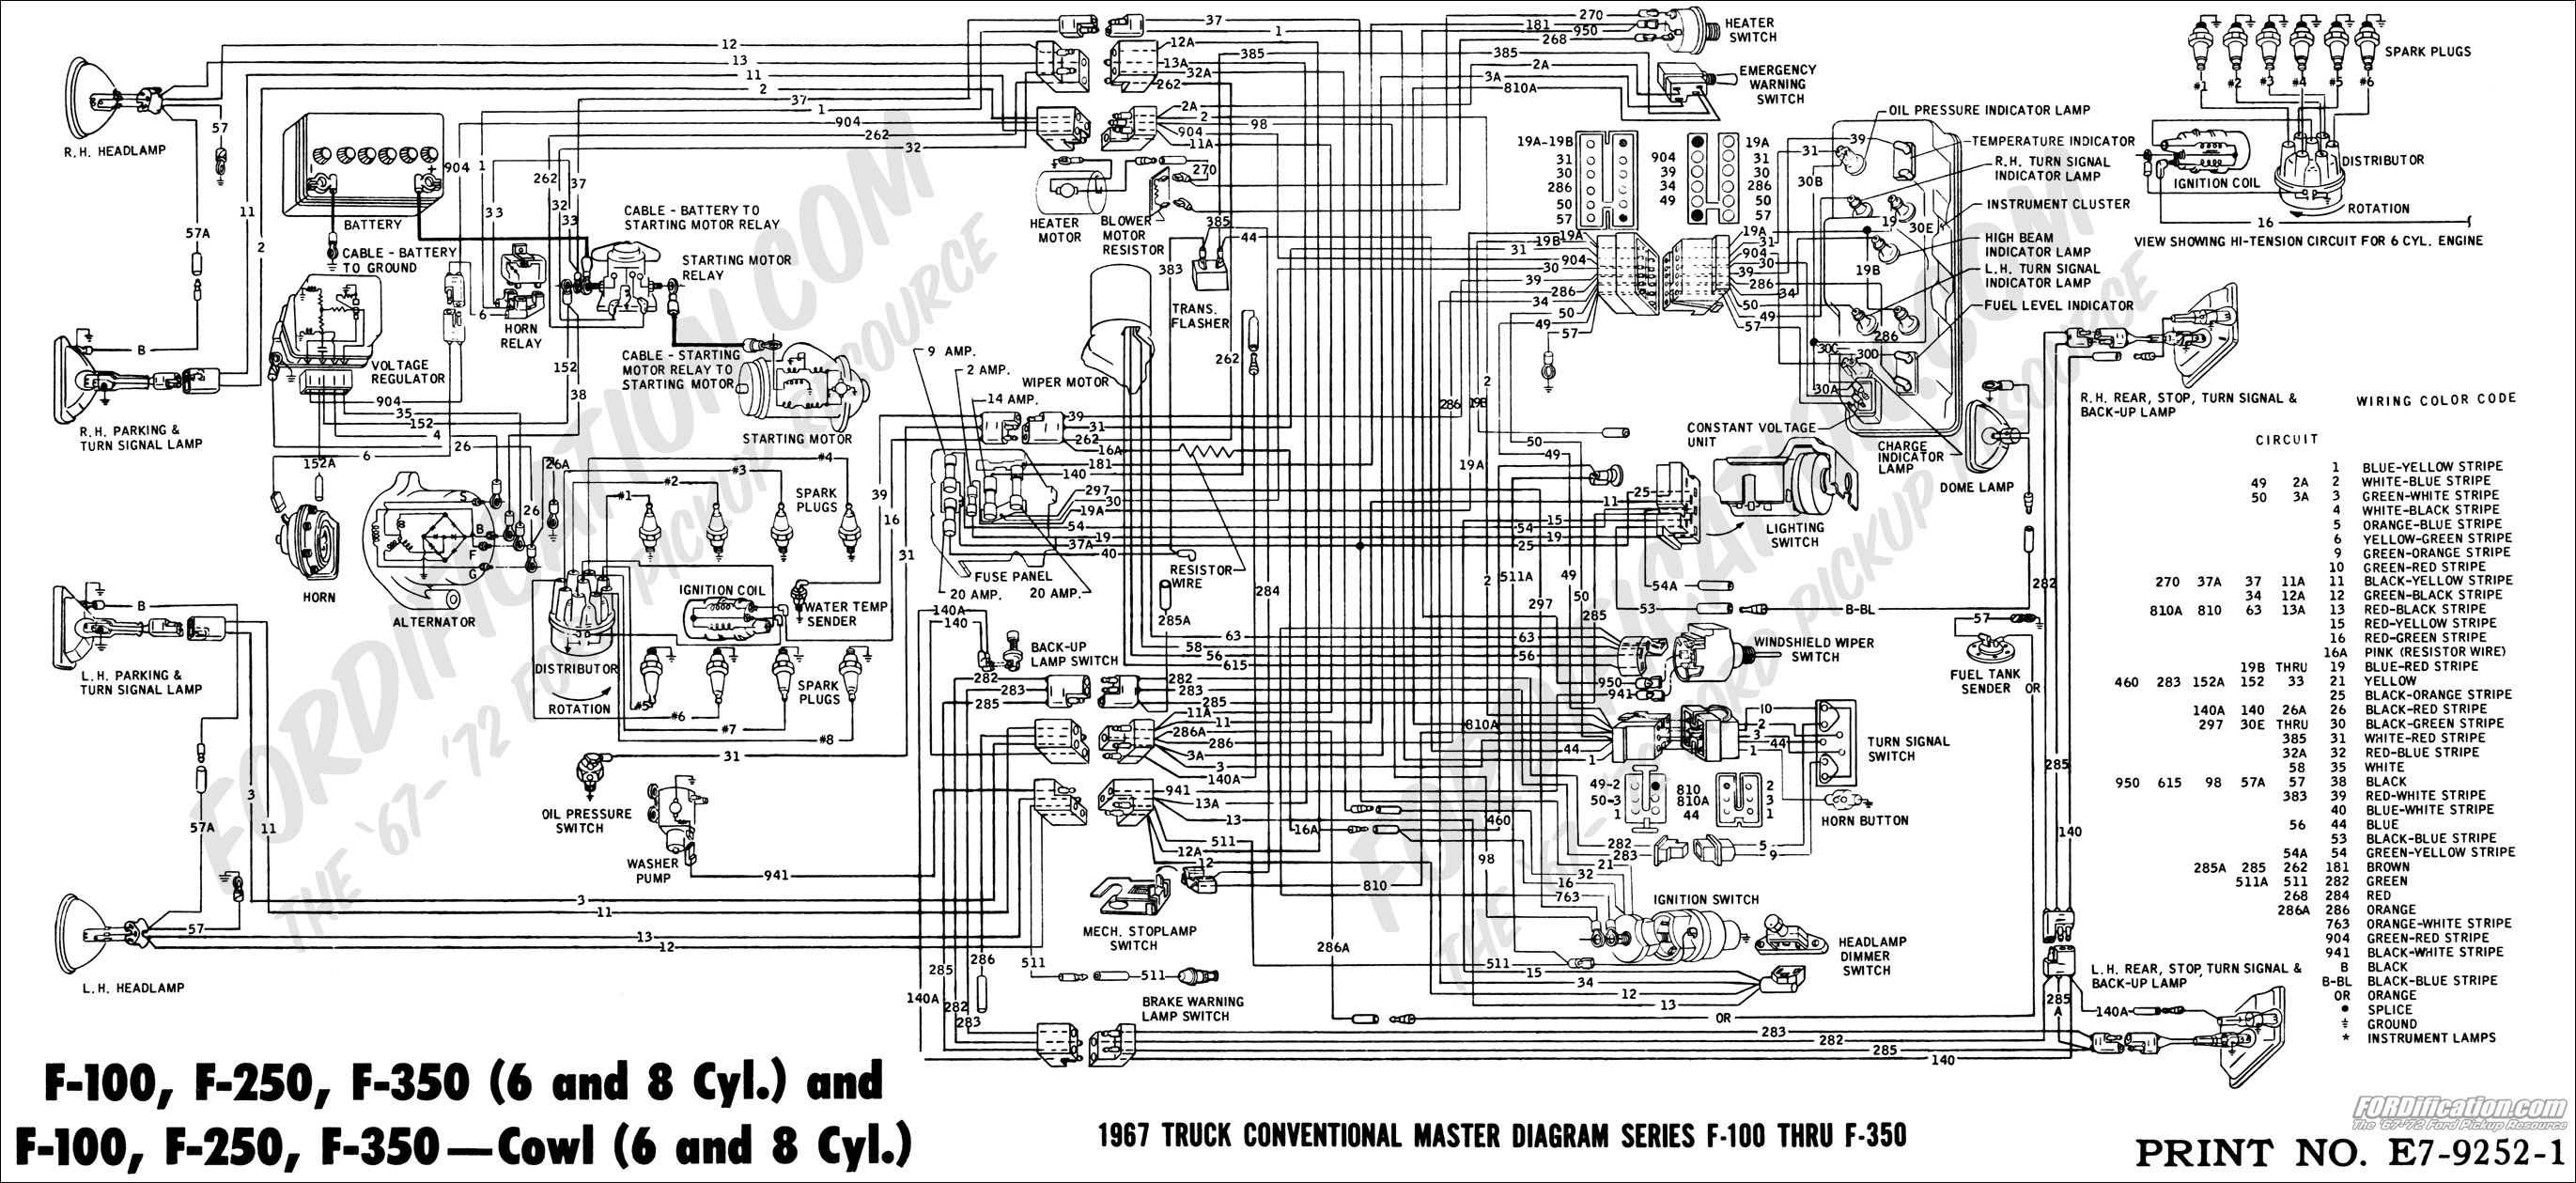 2001 F150 Wiring Diagram - Wiring Diagram Mega  Ford Ranger Tail Light Wiring Diagram on ford ranger 2.9 wiring-diagram, ford super duty trailer wiring diagram, ford ranger tail light assembly, ford ranger tail light plug, ford brake switch diagram, rewiring a boat diagram, ford wiring harness diagrams, ford truck wiring diagrams, ford ranger tail light cover, ford ranger fuse diagram, ford brake light wiring diagram, 2002 ford explorer power window wiring diagram, ranger boat livewell diagram, century boats lights diagram, ford trailer plug wiring diagram, ford ranger tail light connectors, ford econoline e350 fuse diagram for 2009, ford f-350 wiring diagram, ford ranger turn signal diagram, ford ranger trailer wiring harness,